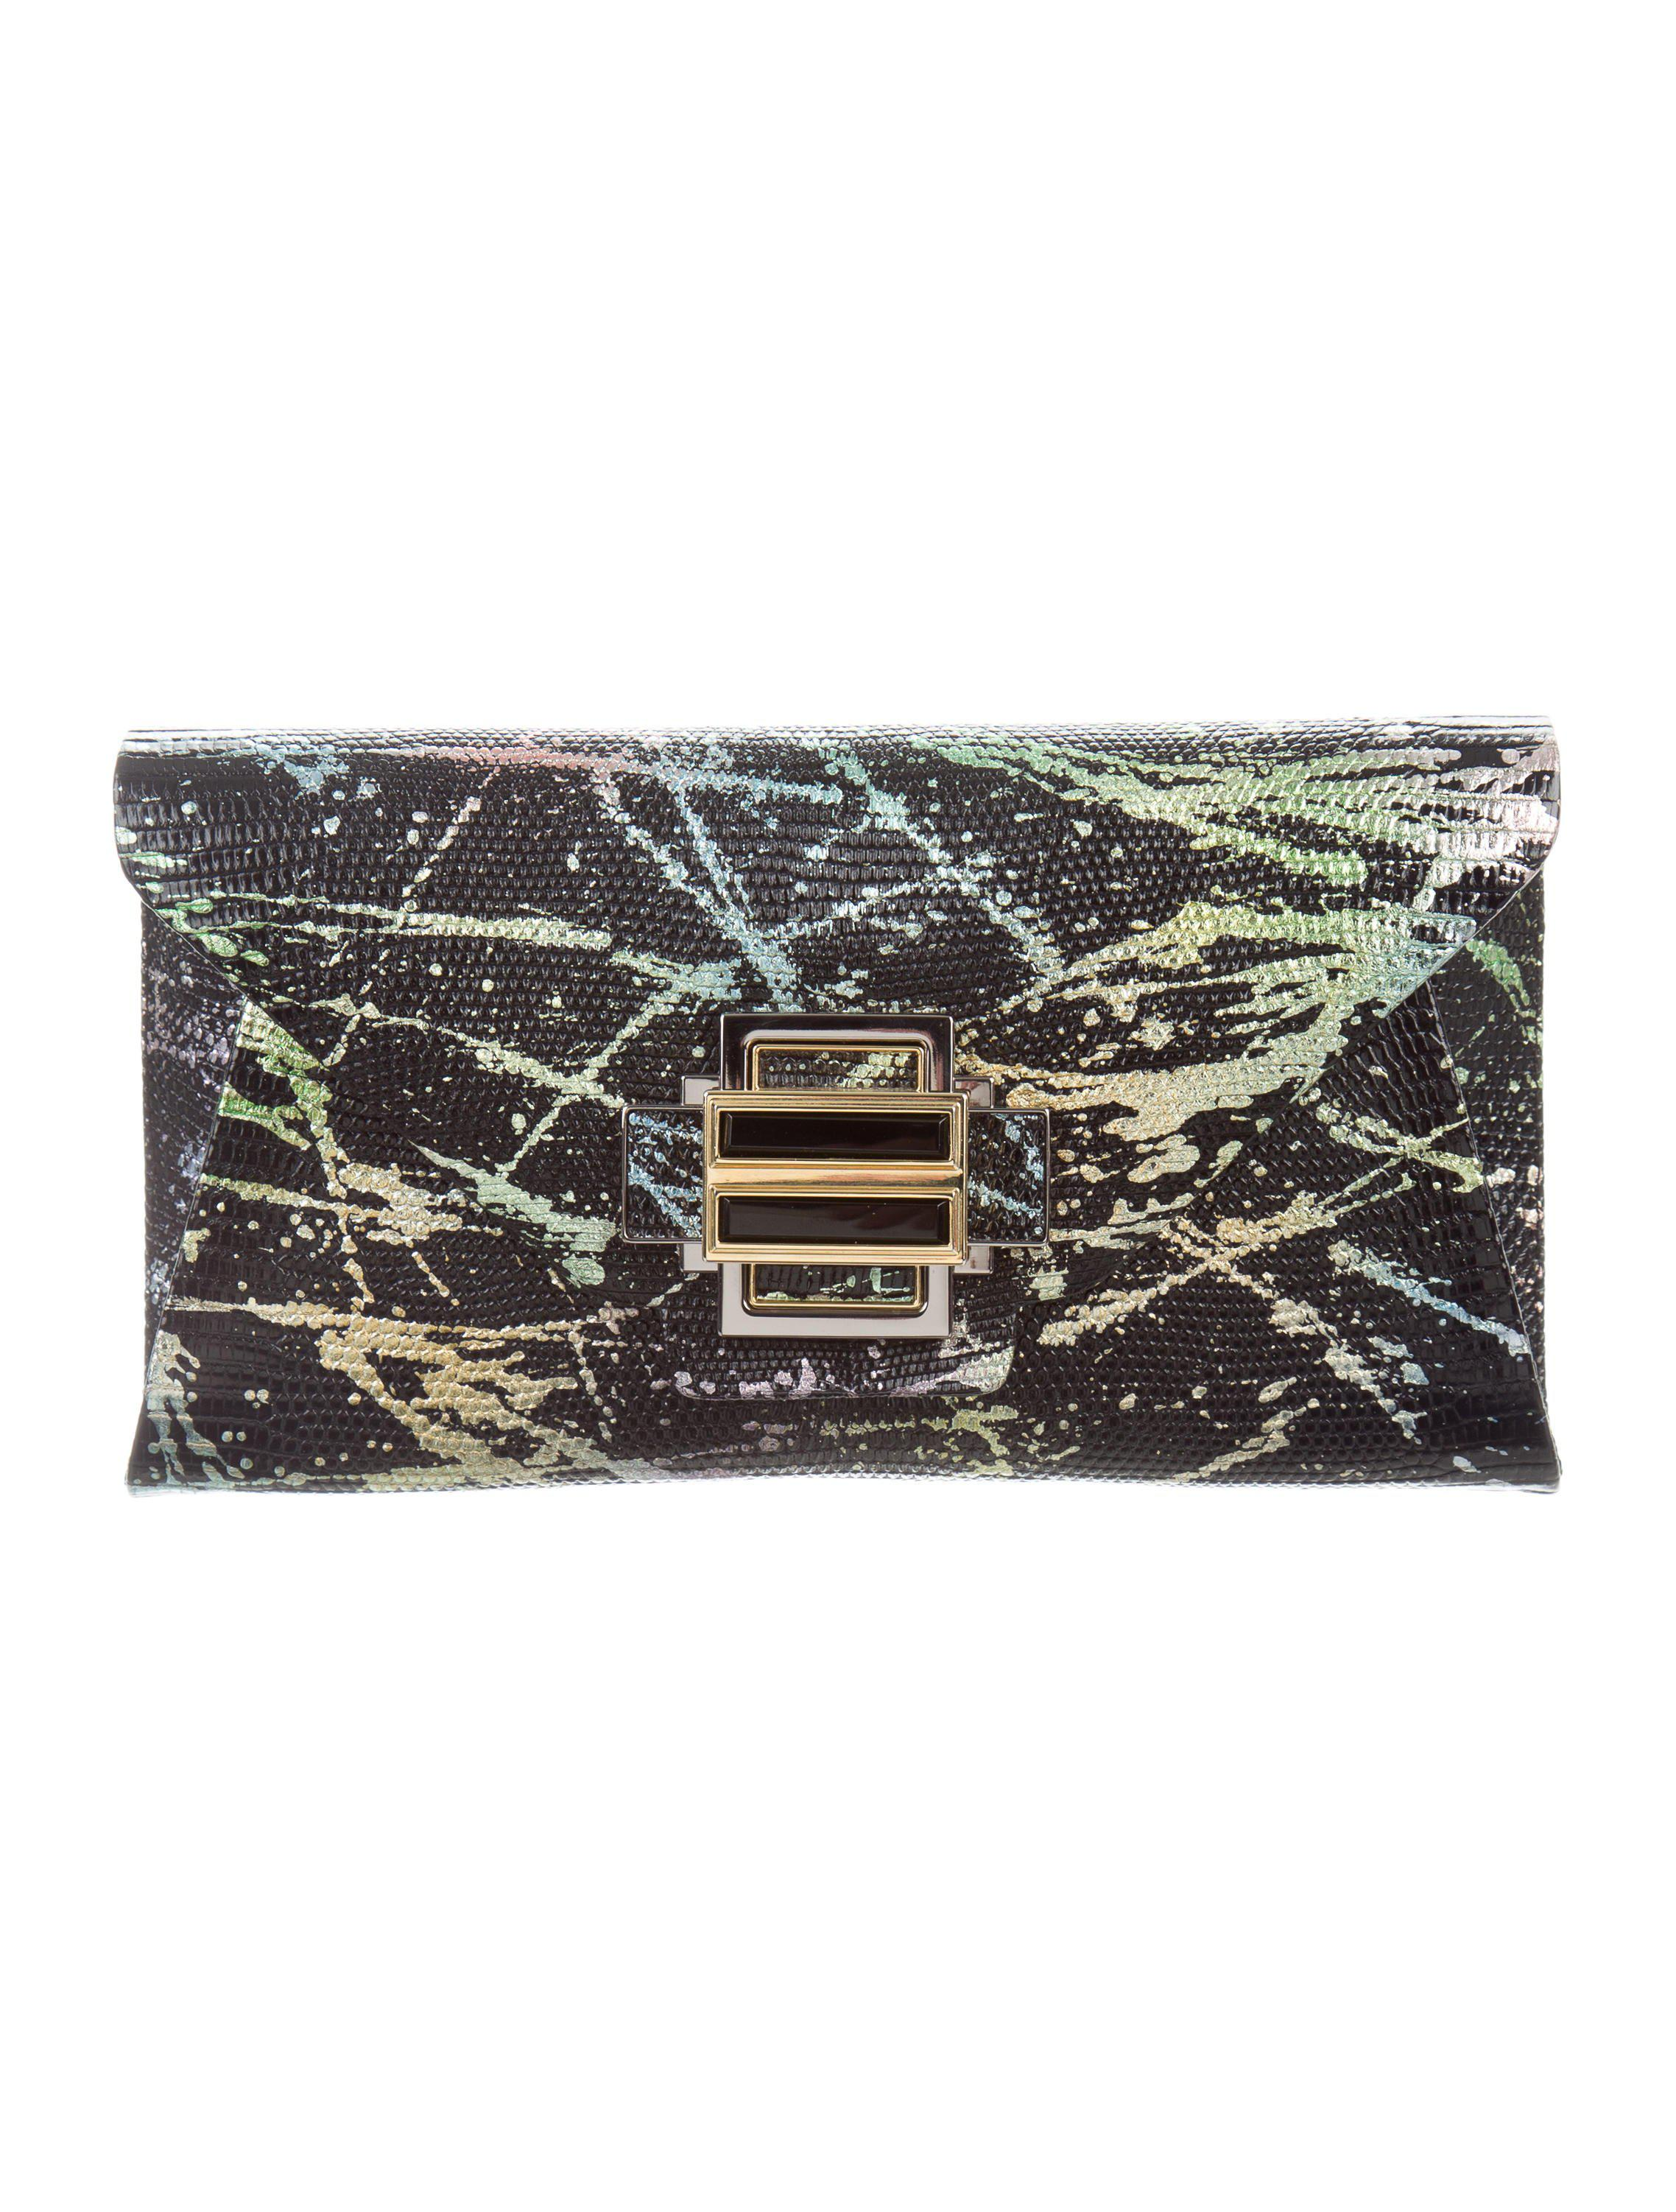 Lyst - Kara Ross Lizard Electra Clutch Black in Metallic bdf938b40b100